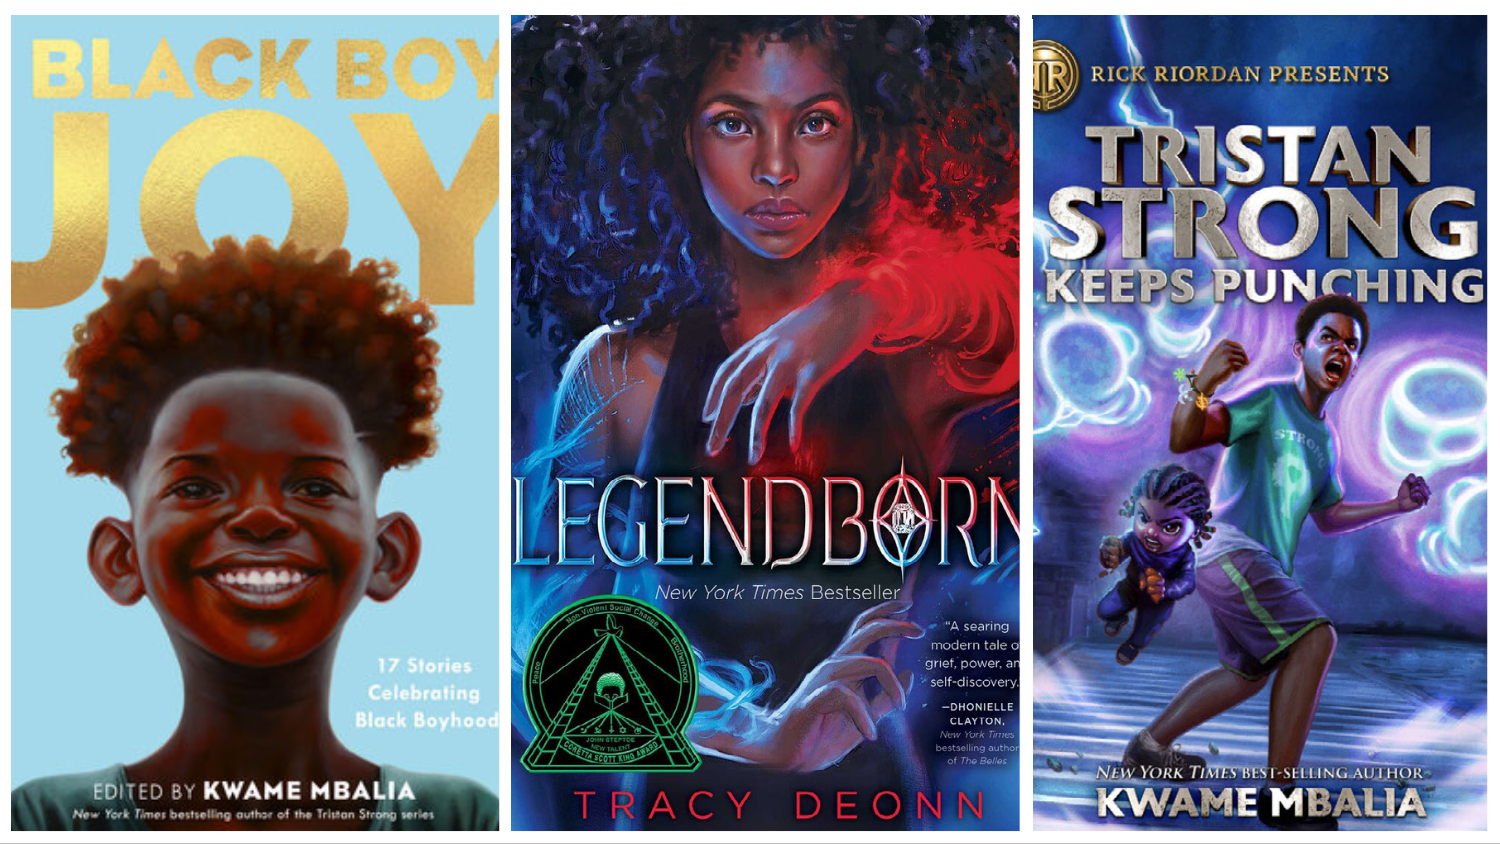 Covers of books written by best-selling authors Tracy Deonn and Kwame Mbalia